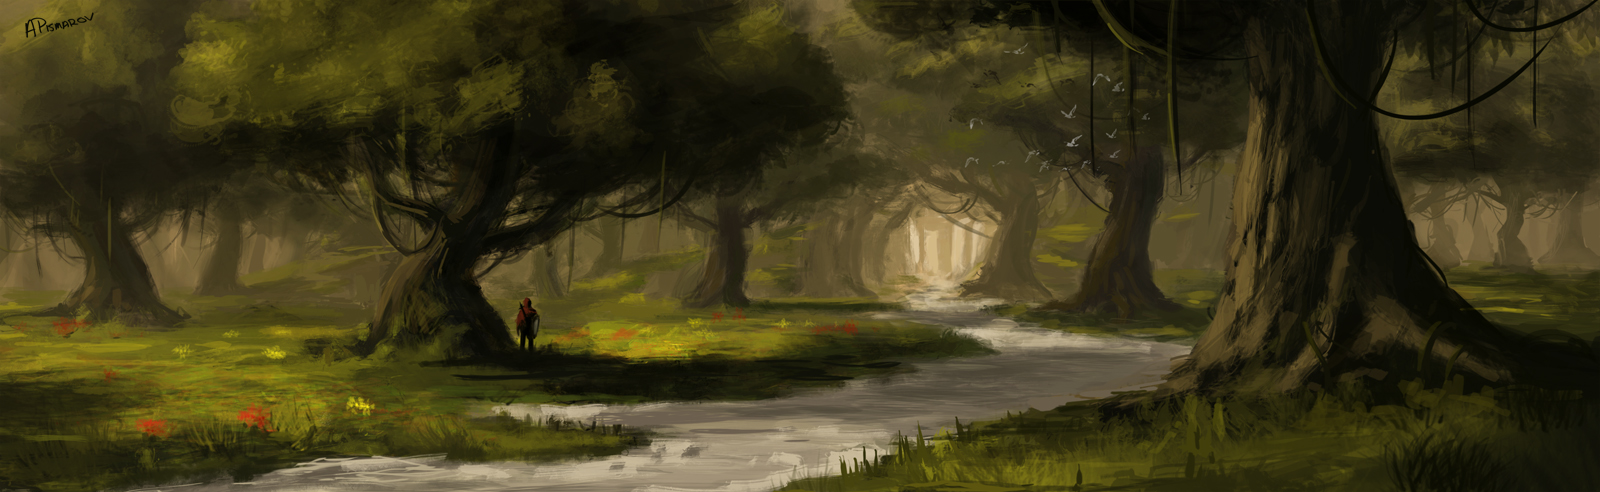 Shady Grove By Anthonypismarov On Deviantart